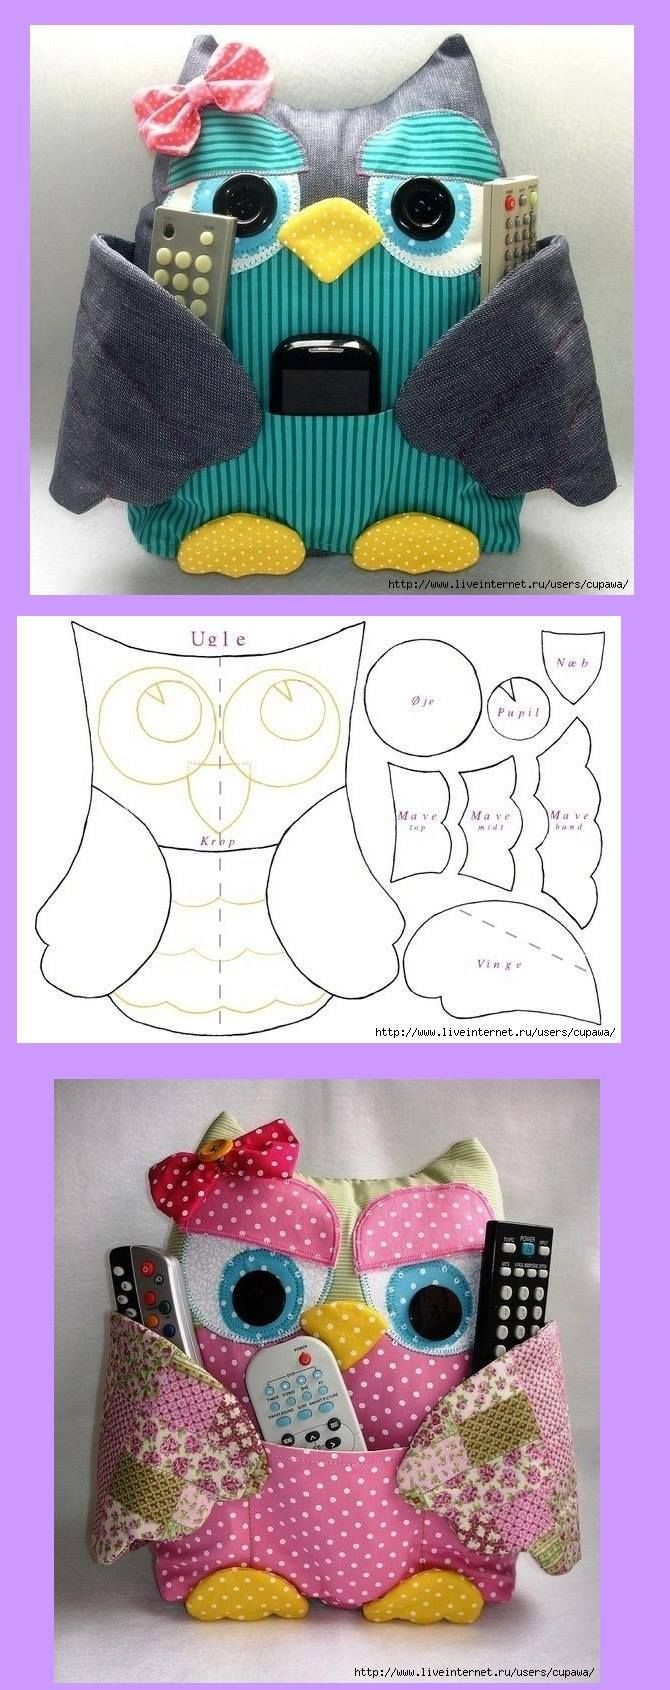 sewing tutorial for owl accessories holder ♥